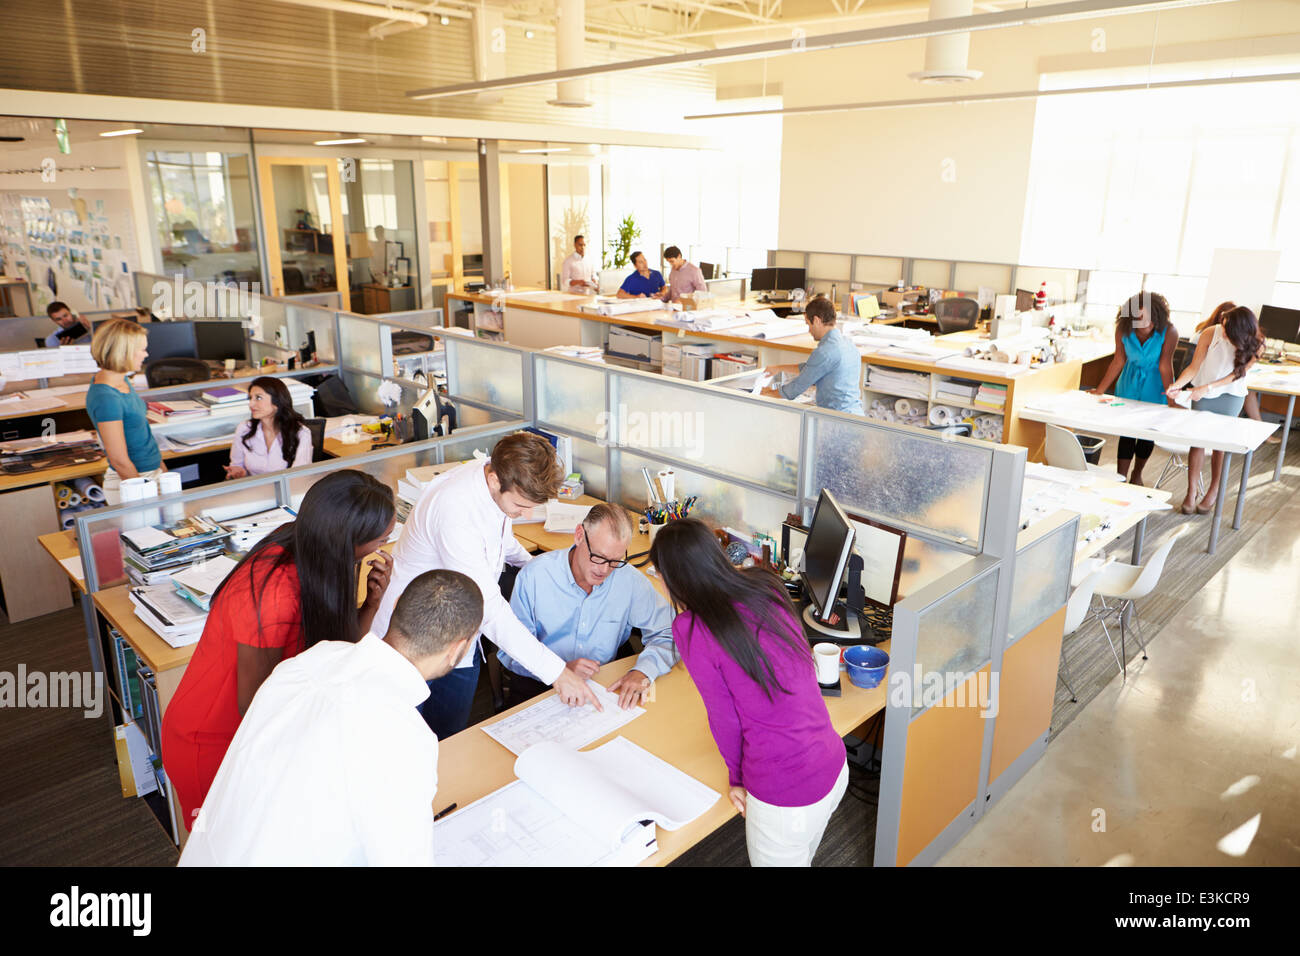 interior of busy modern open plan office stock photo 71112589 alamy